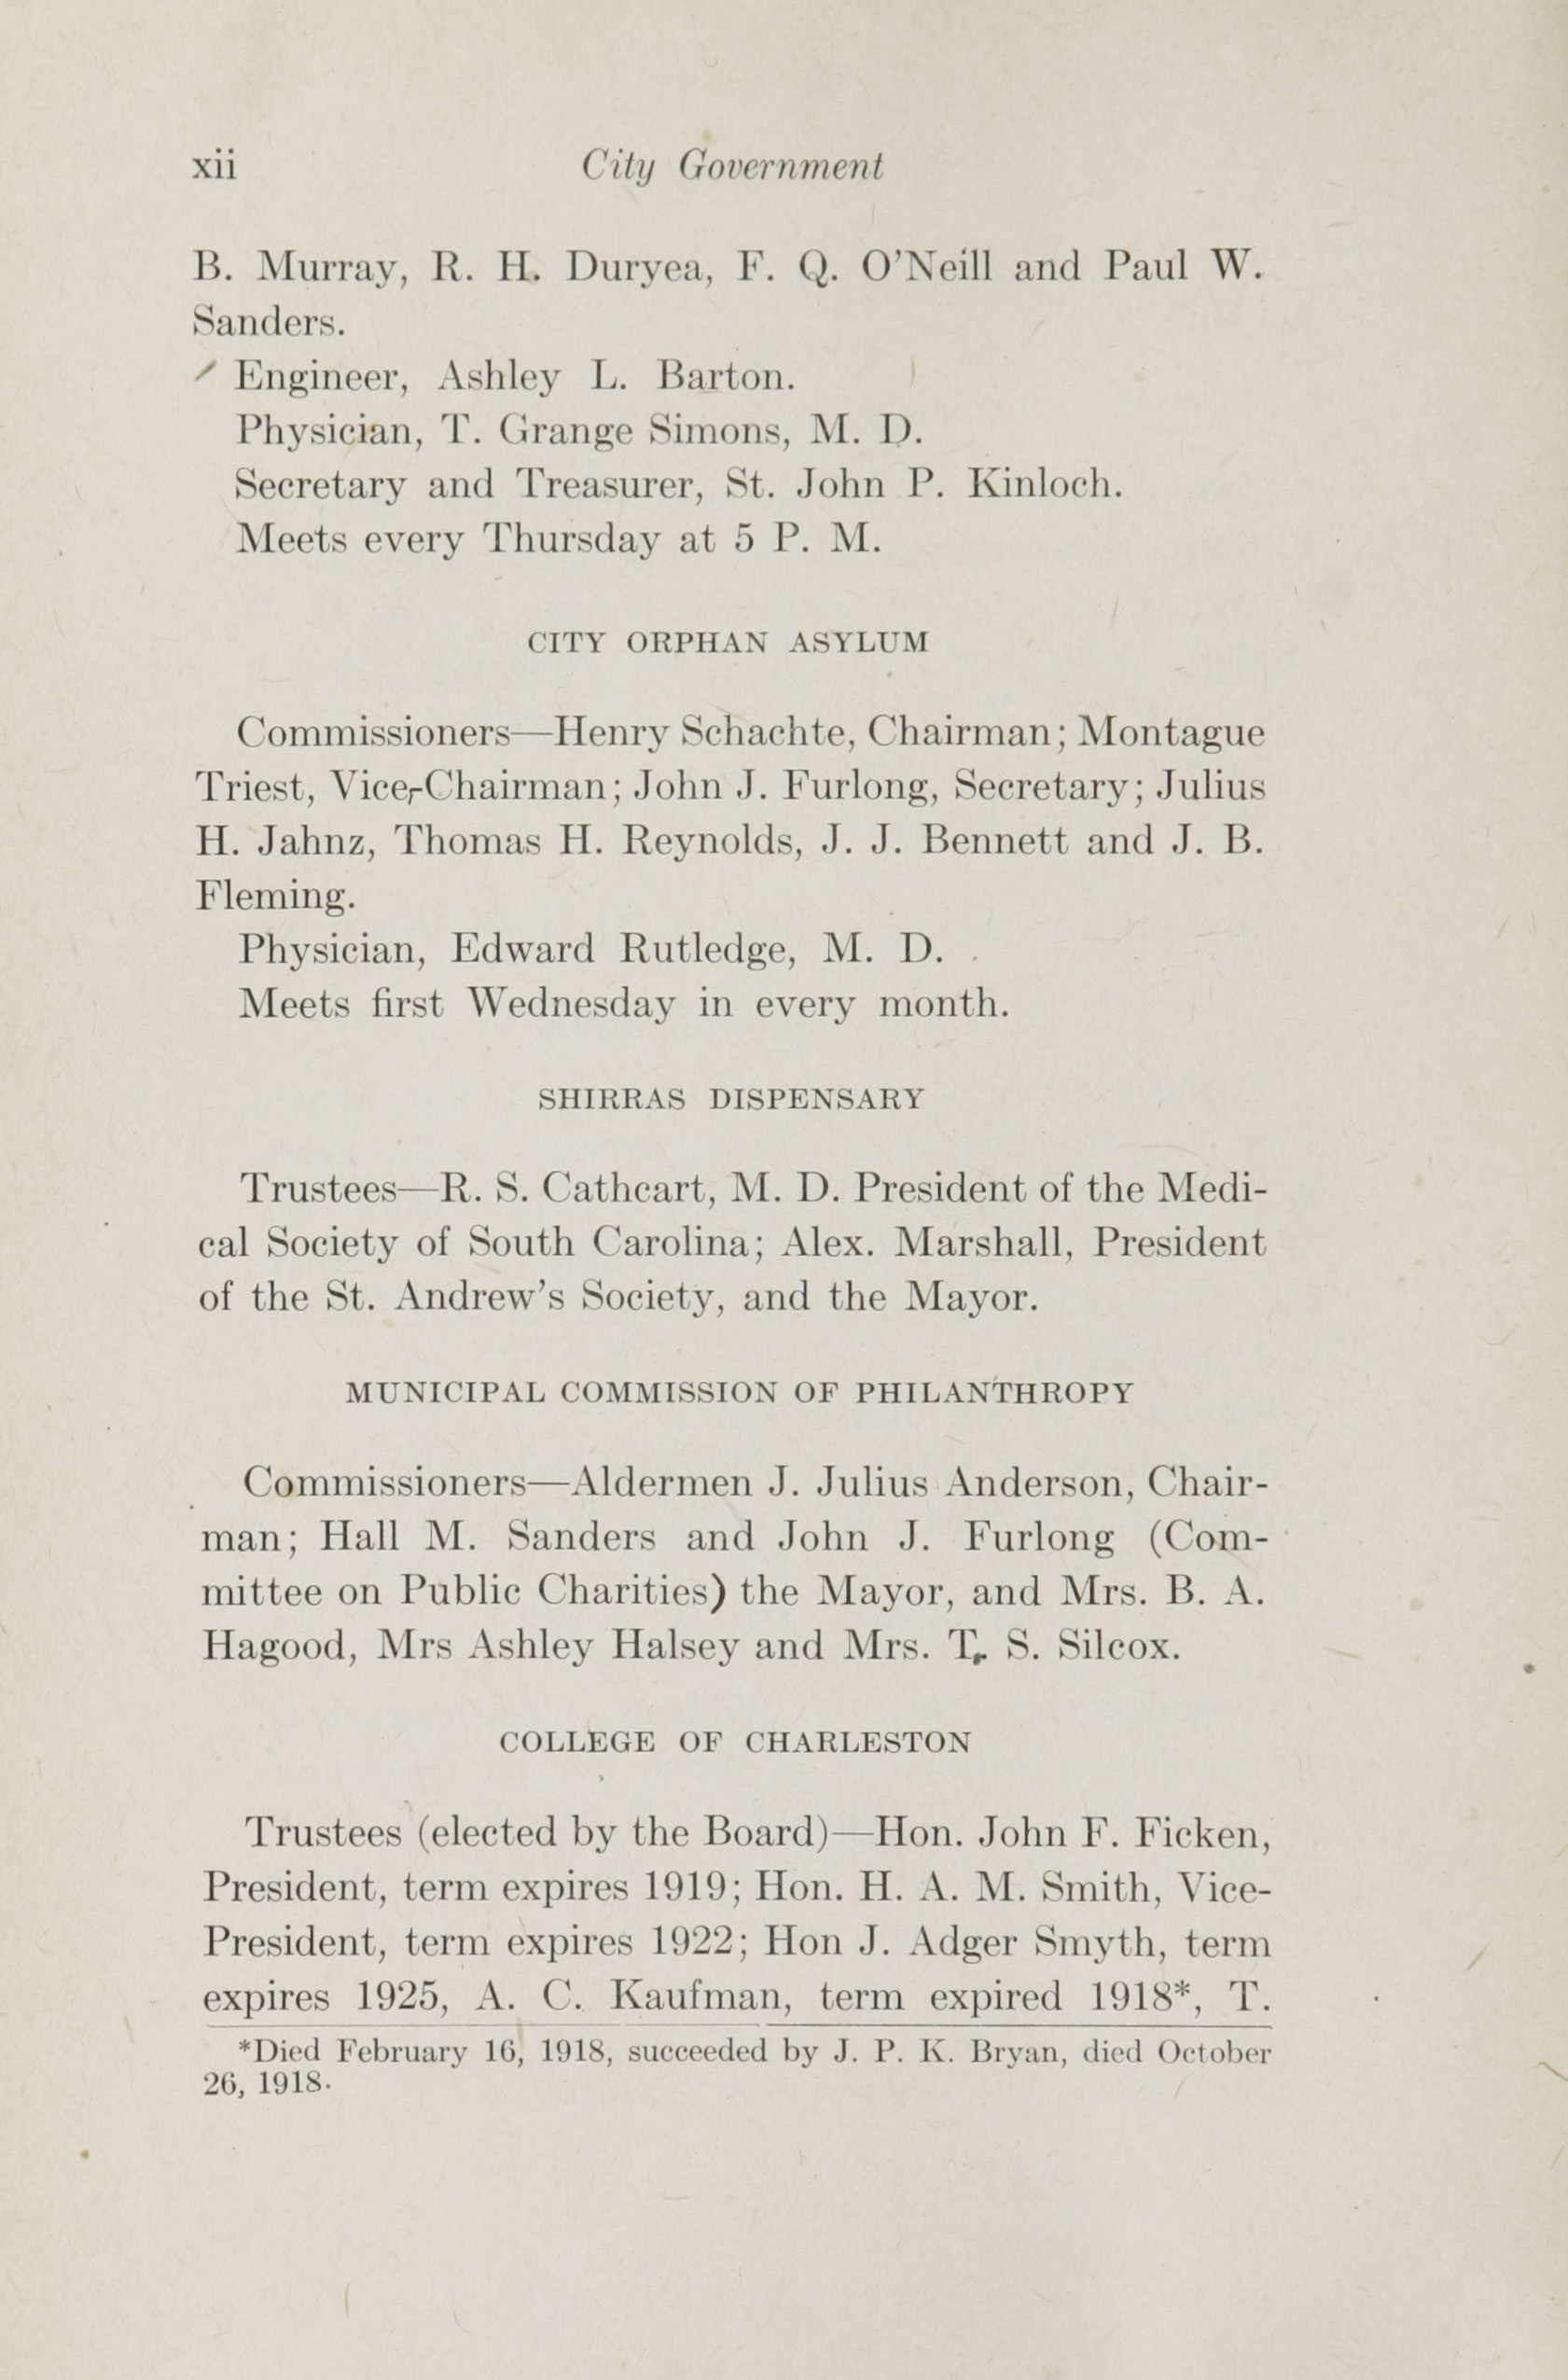 Charleston Yearbook, 1918, page xii